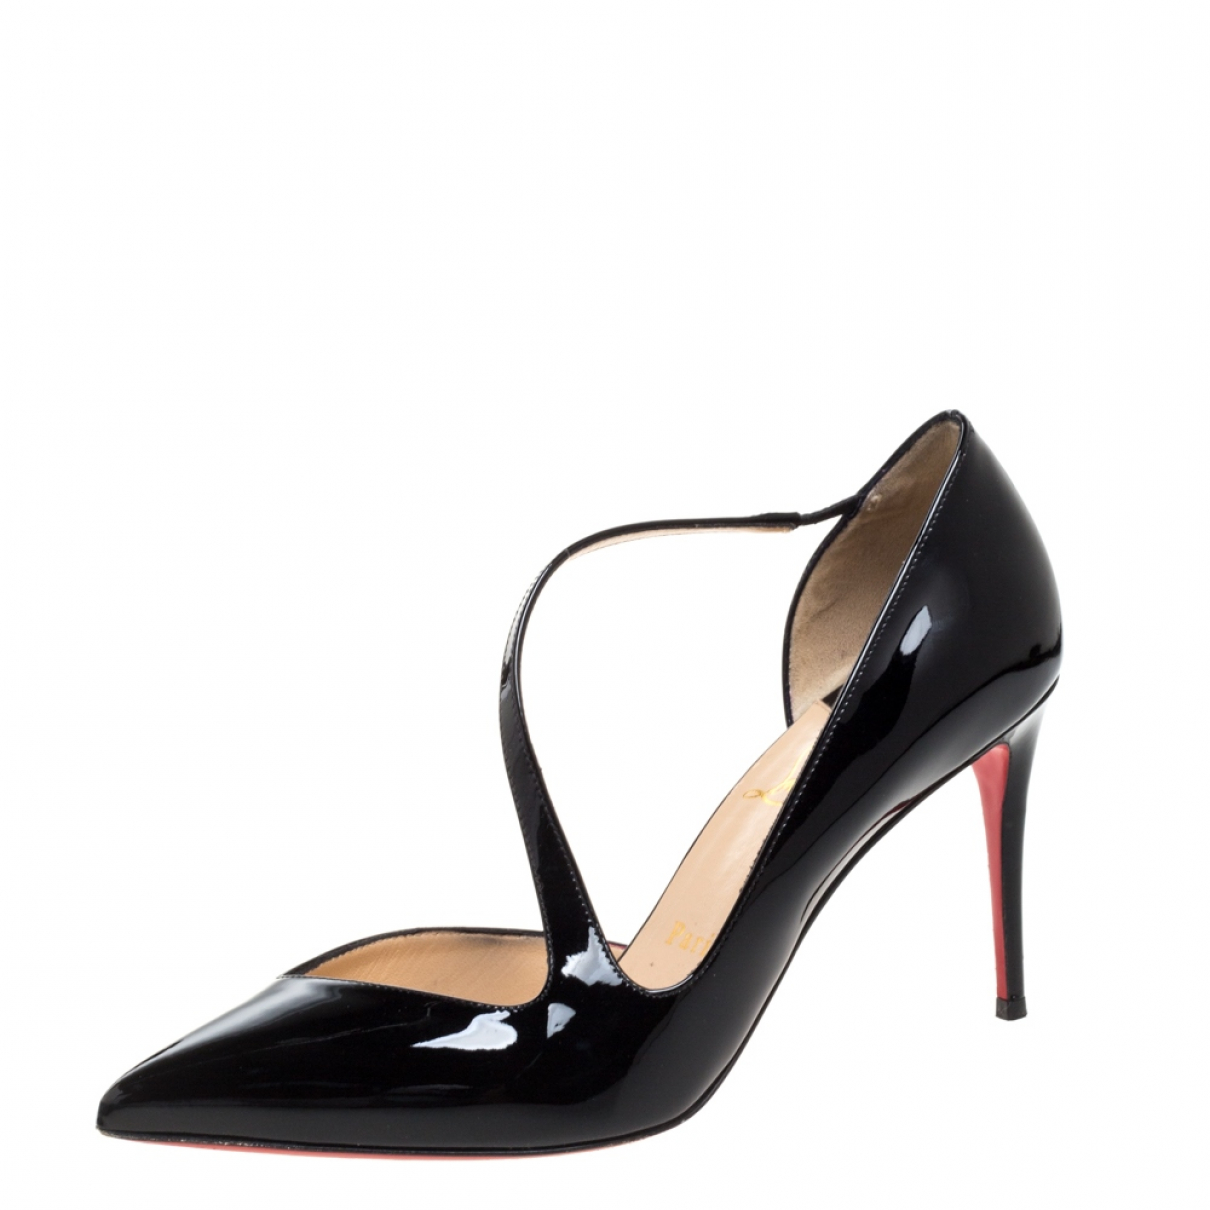 Christian Louboutin N Black Patent leather Heels for Women 7.5 US